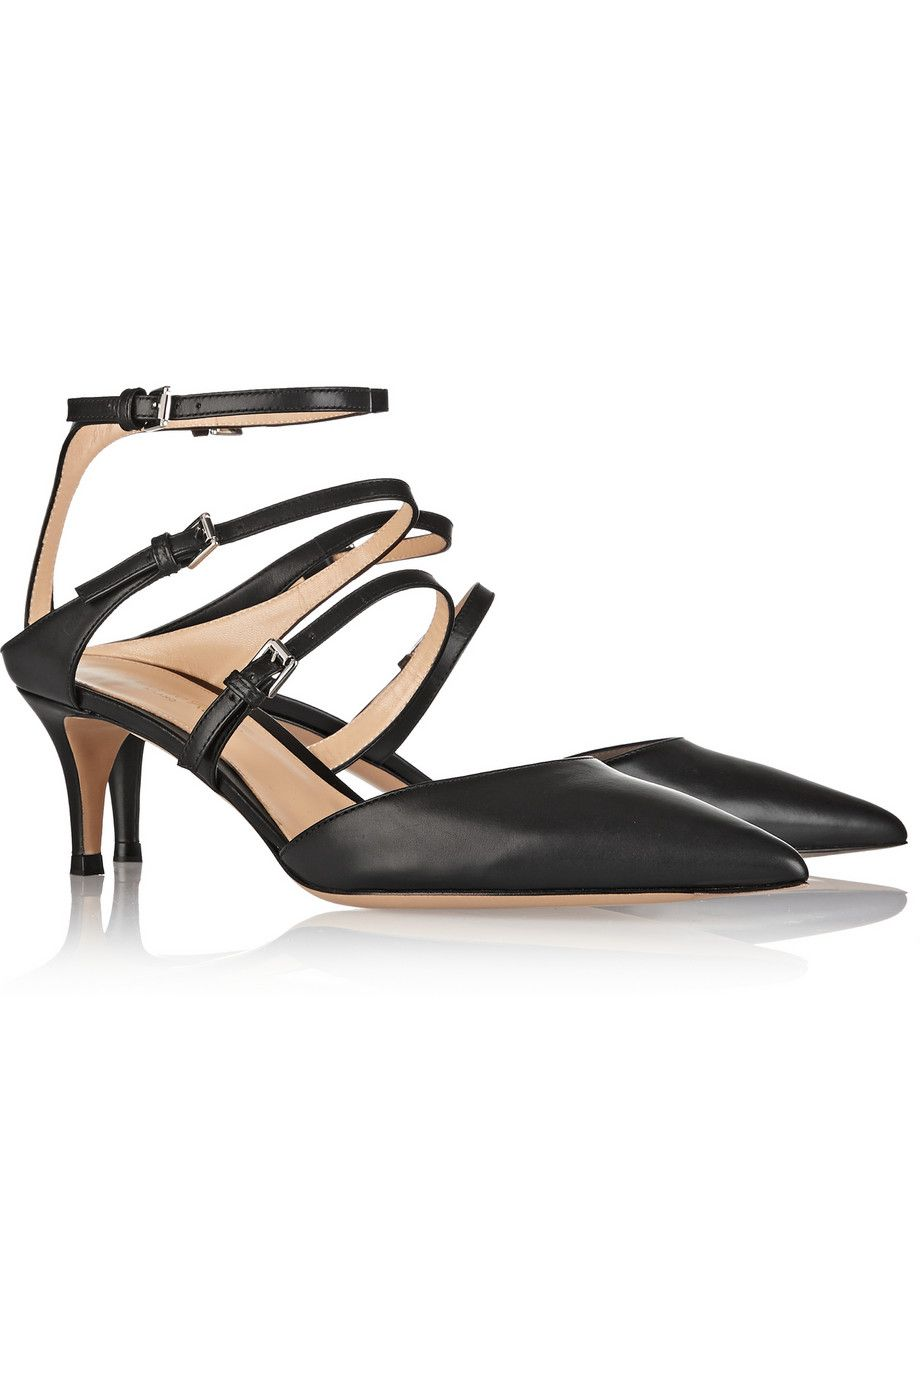 Gianvito Rossi|Leather point-toe pumps|NET-A-PORTER.COM